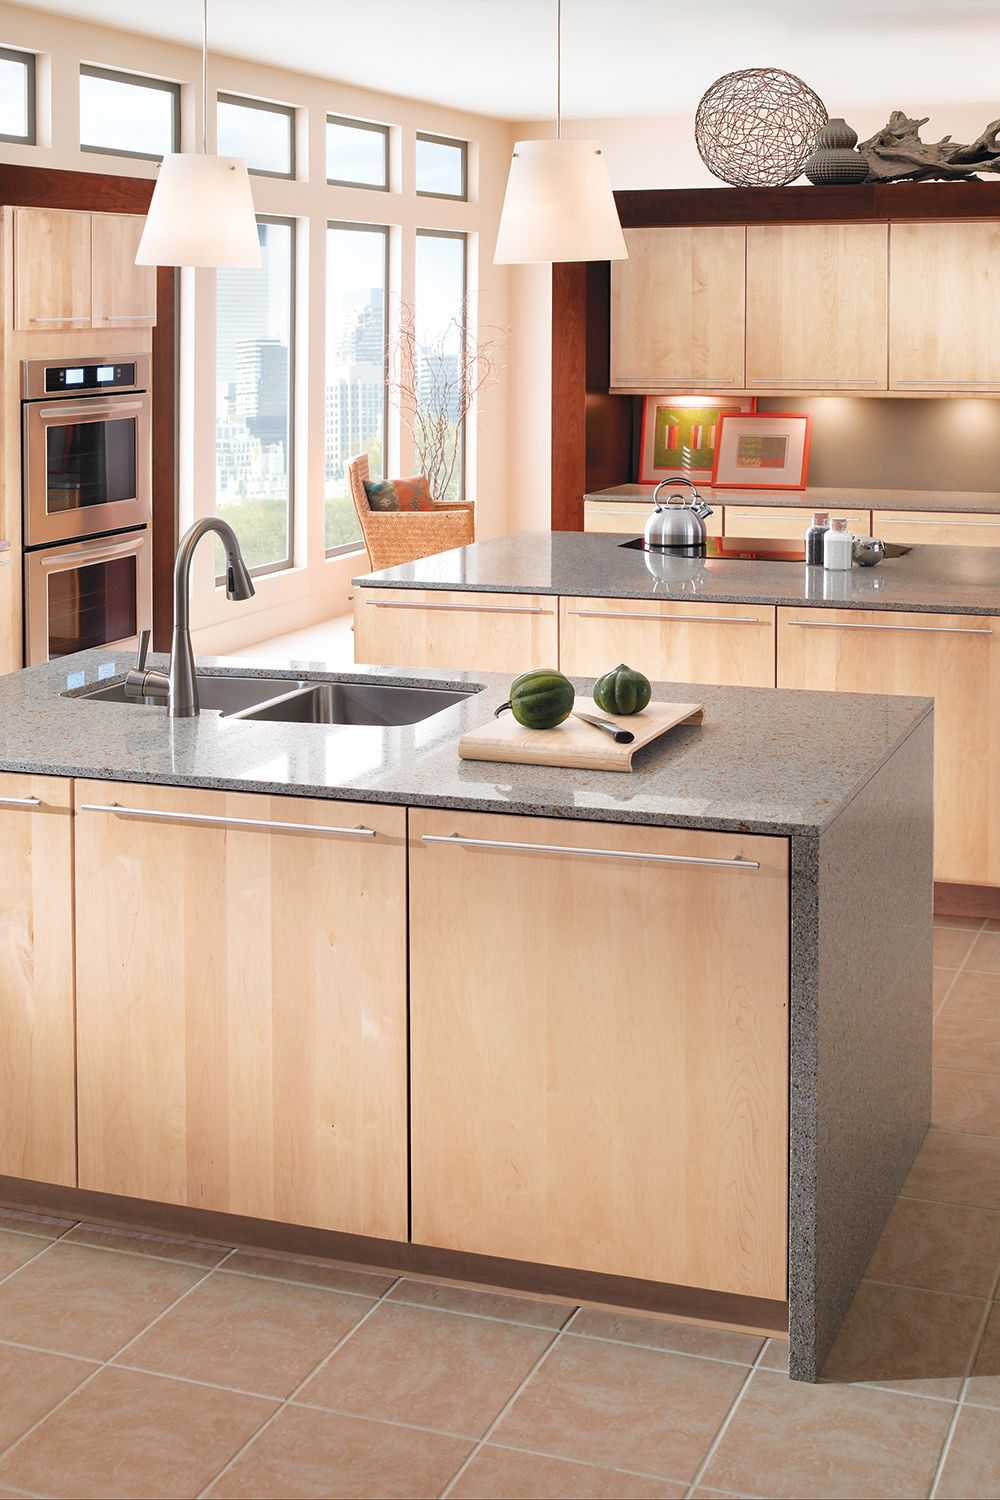 Blonde Bombshell In 2020 Maple Kitchen Cabinets Modern Kitchen Design Wood Kitchen Cabinets